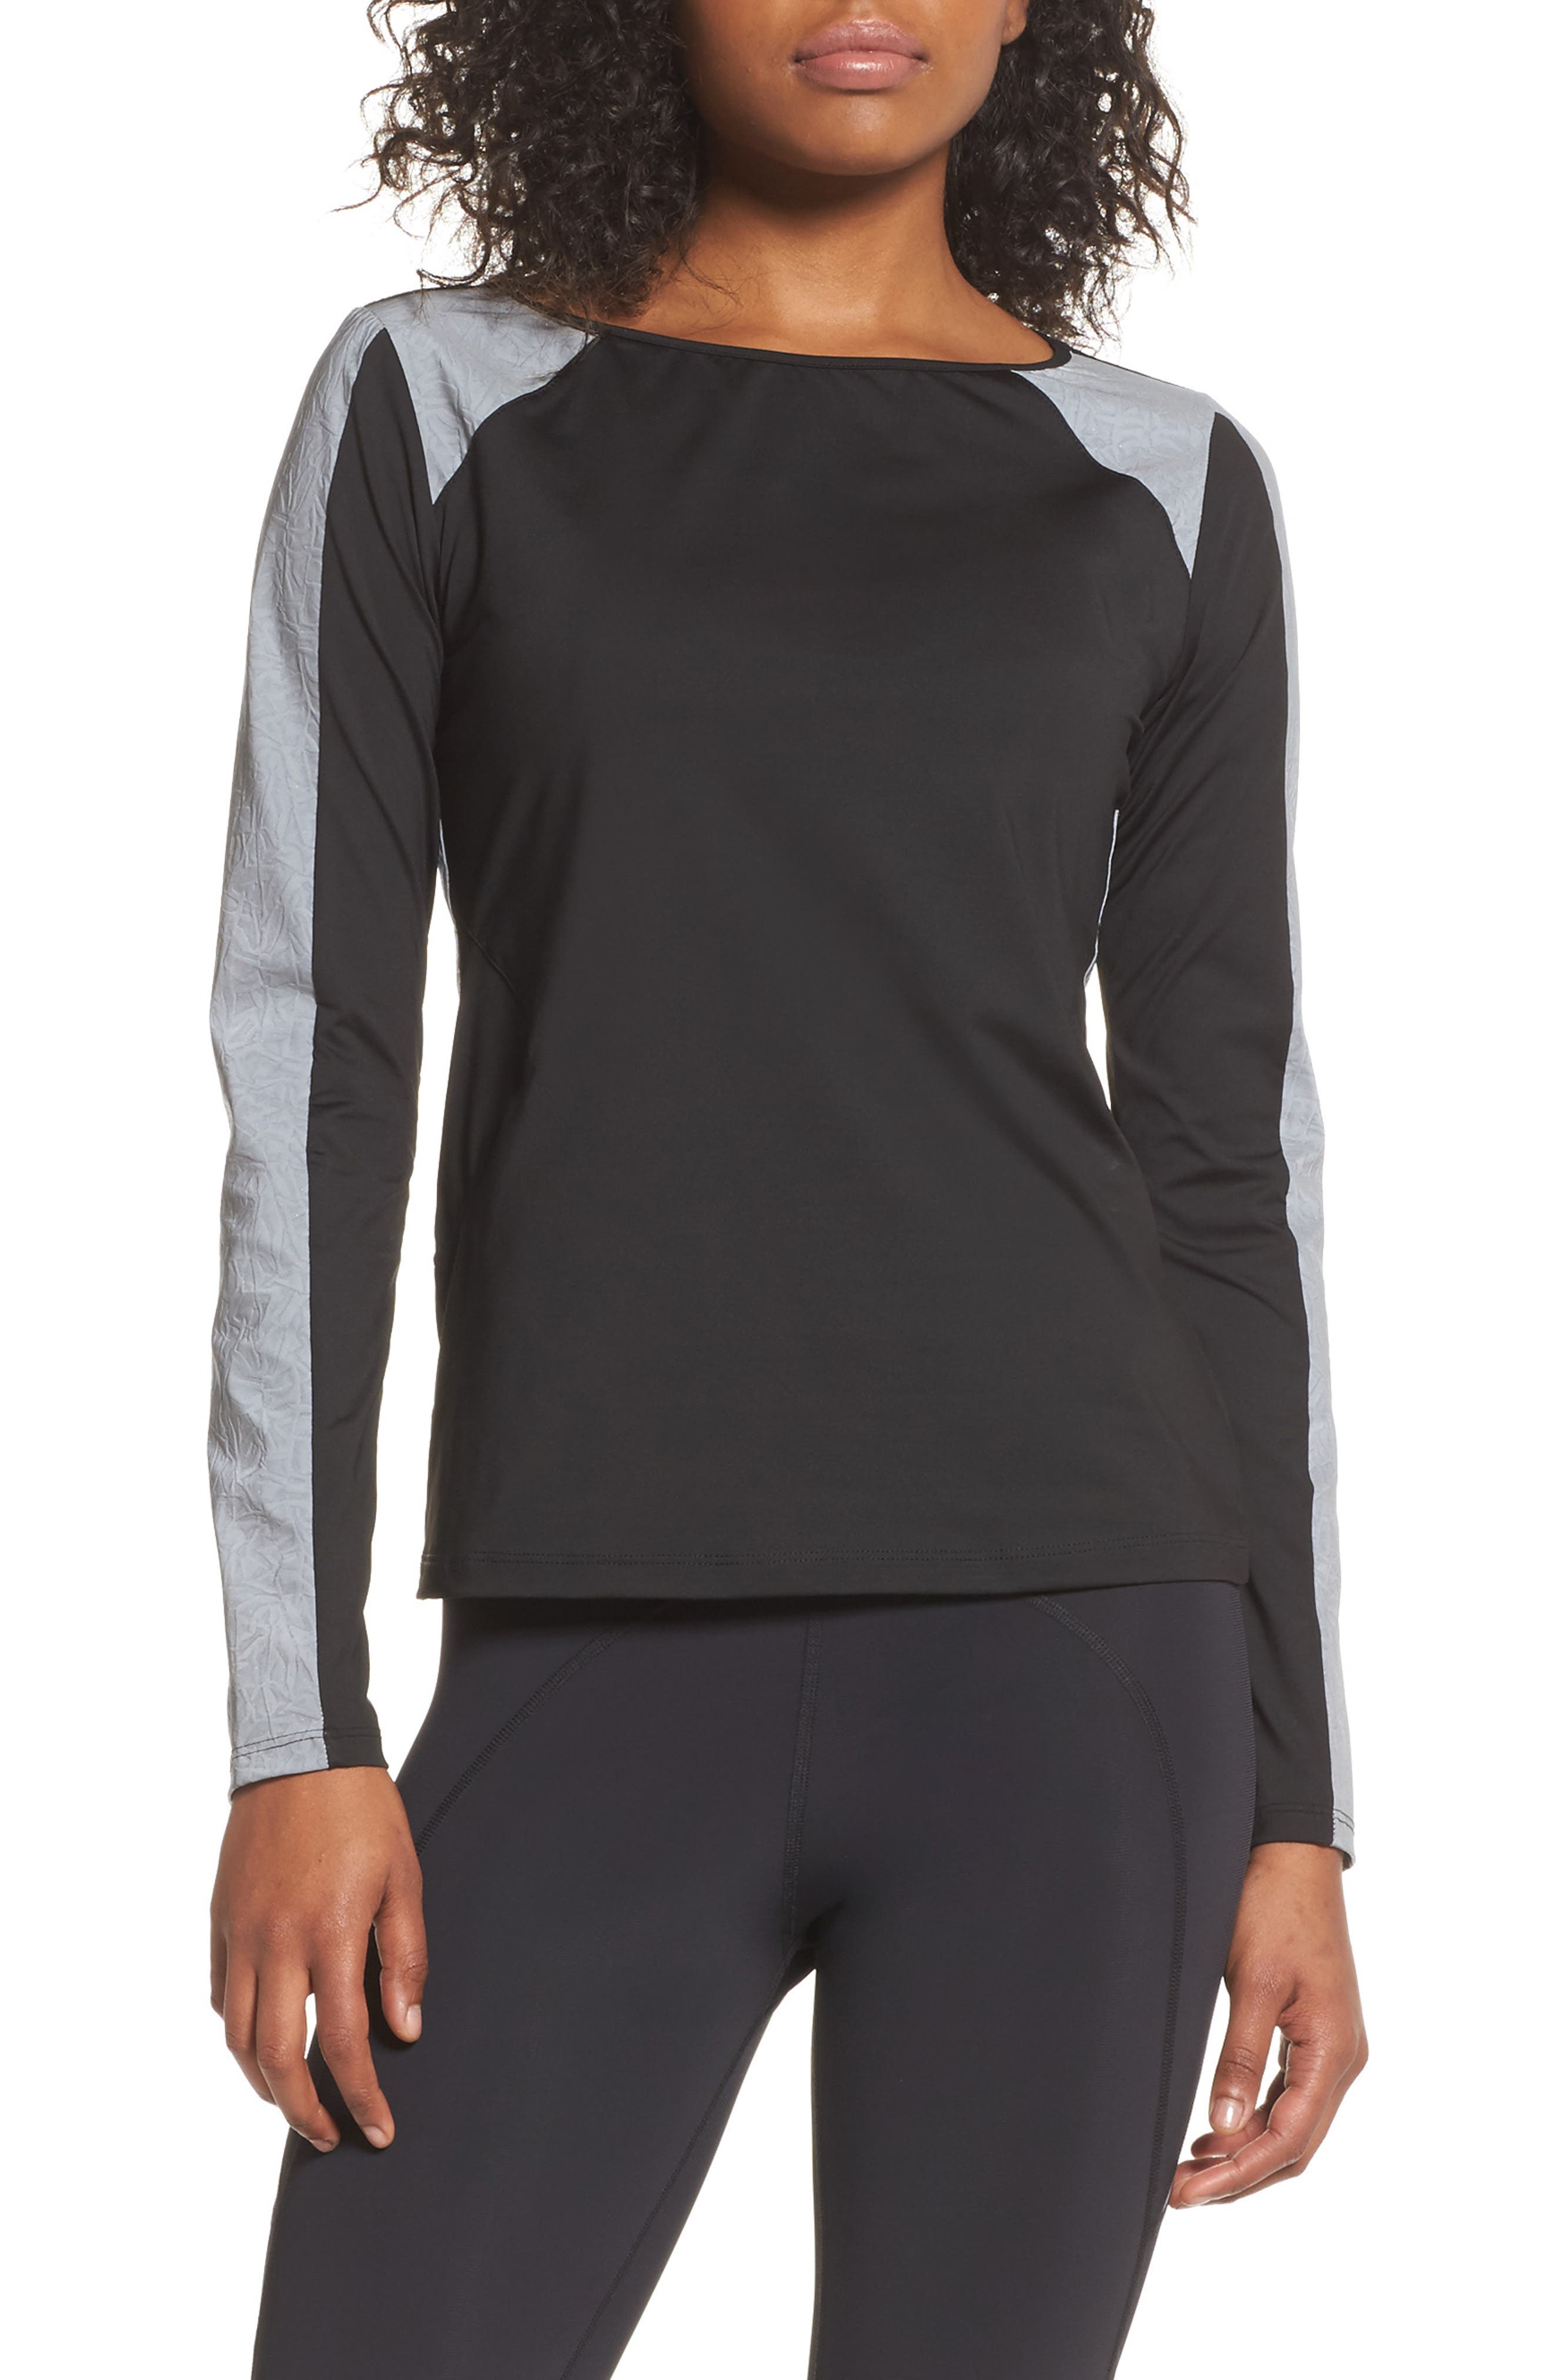 Main Image - BoomBoom Athletica Reflective Body-Con Long Sleeve Tee